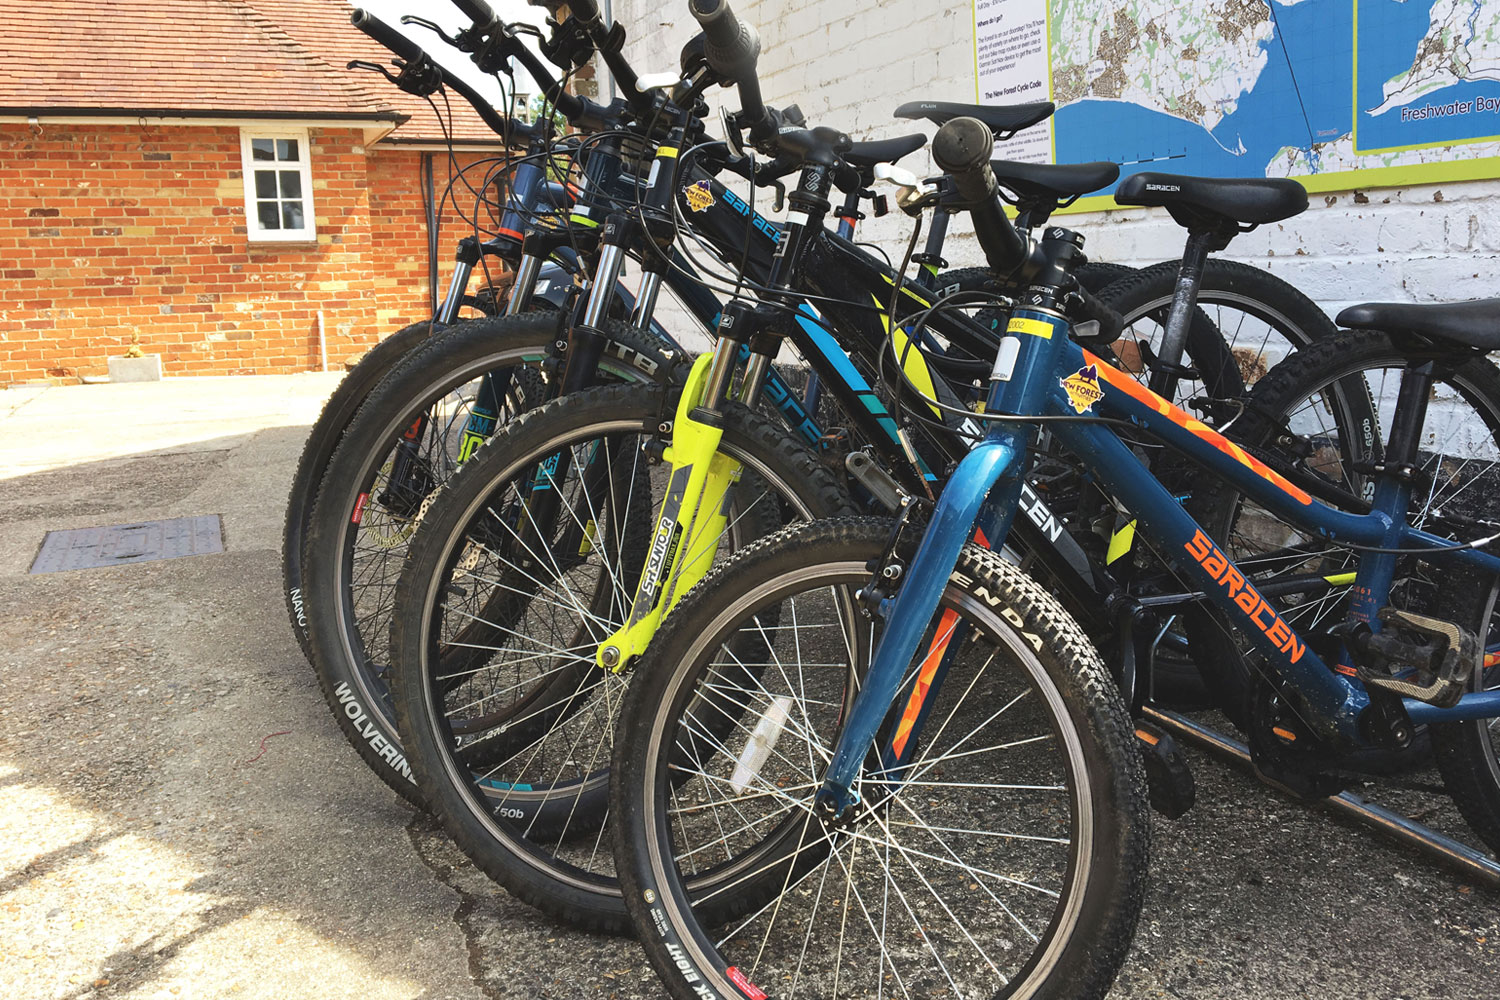 The range of bikes available as part of full day bike hire.